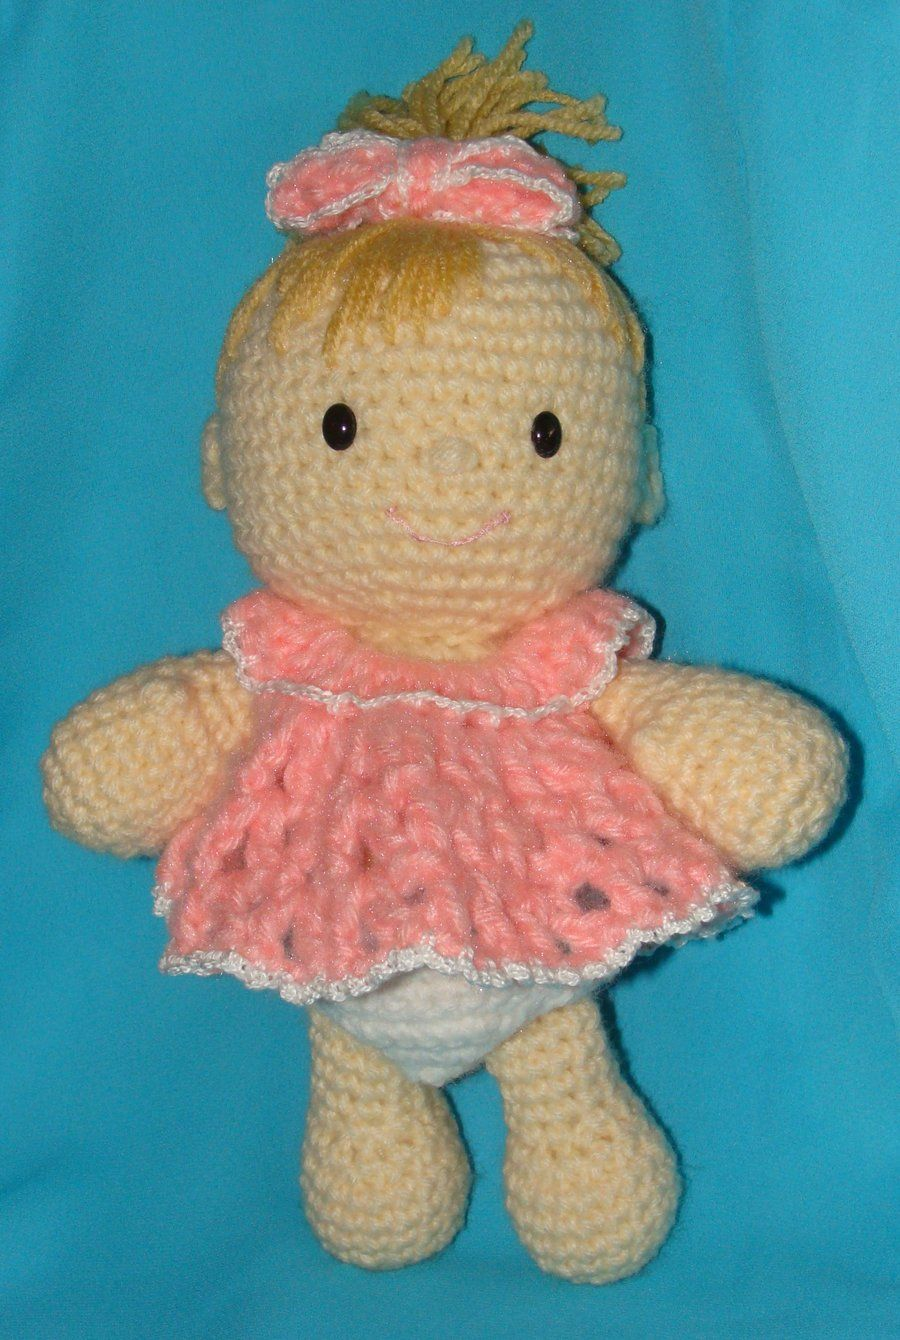 Amigurumi baby doll by dragonlady92768 on deviantart amigurumi amigurumi baby doll by dragonlady92768 on deviantart dt1010fo